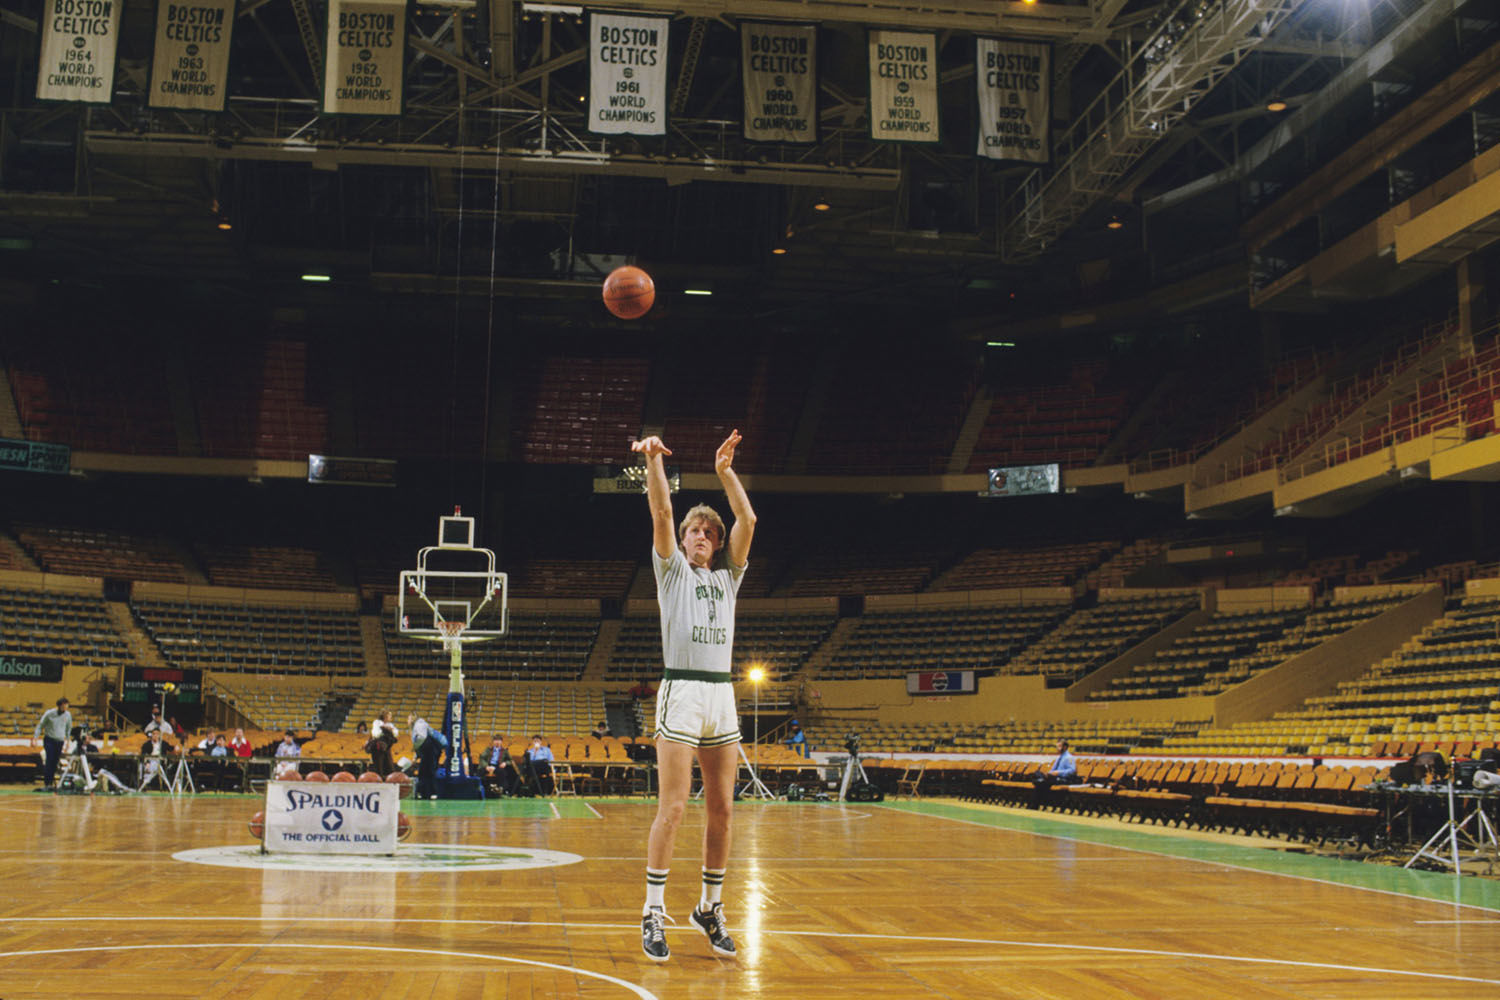 Larry Bird practices before a game on January 22, 1986 in Boston.